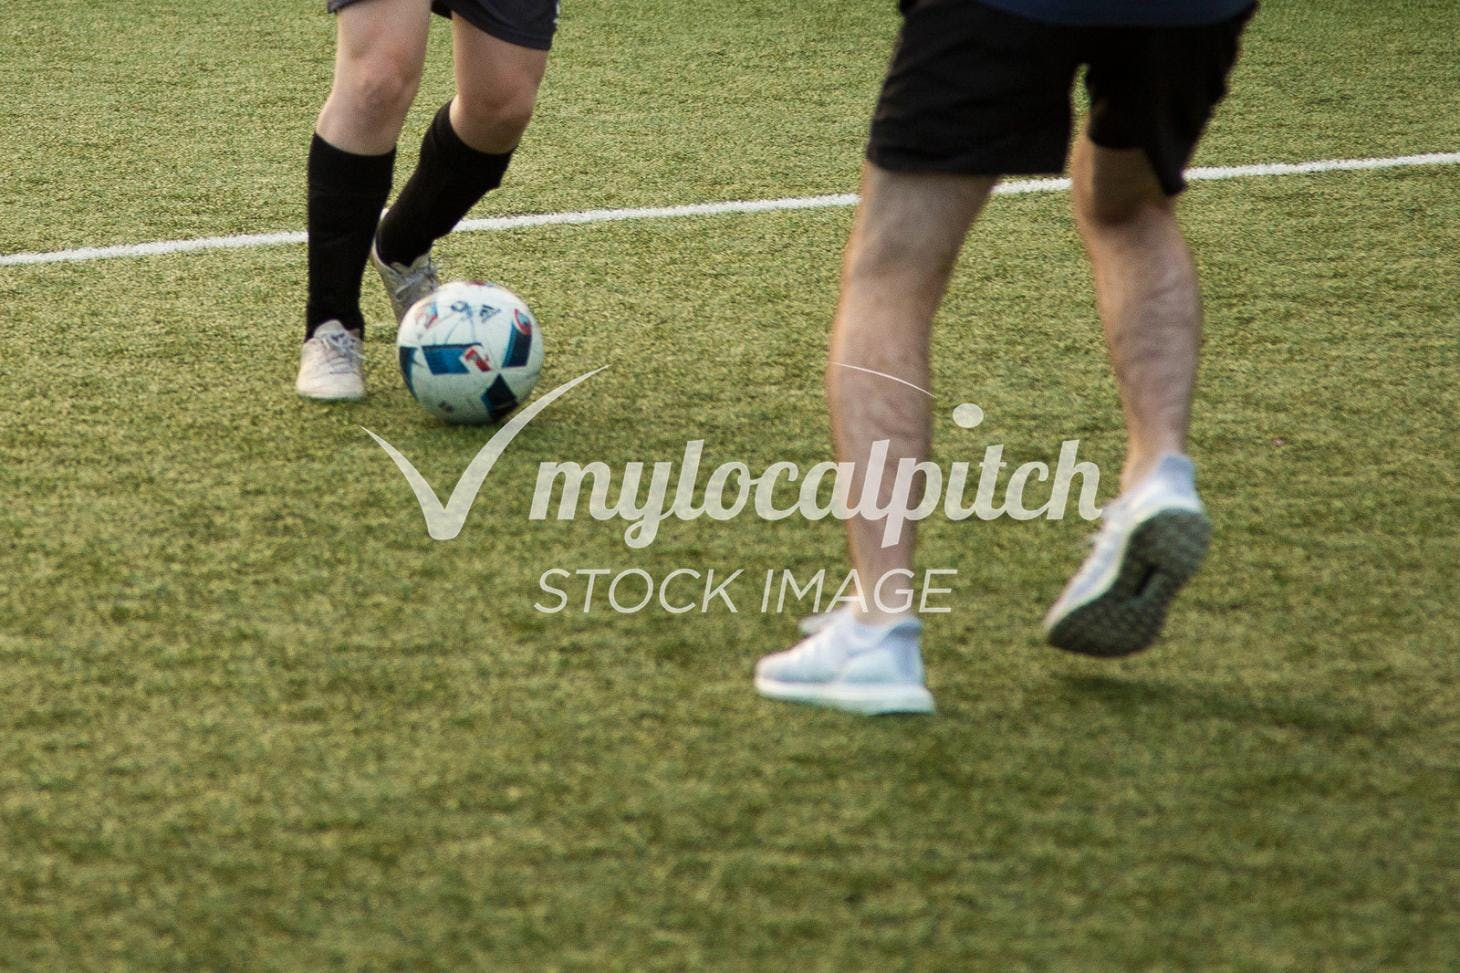 Wandsworth Common 11 a side | Grass football pitch